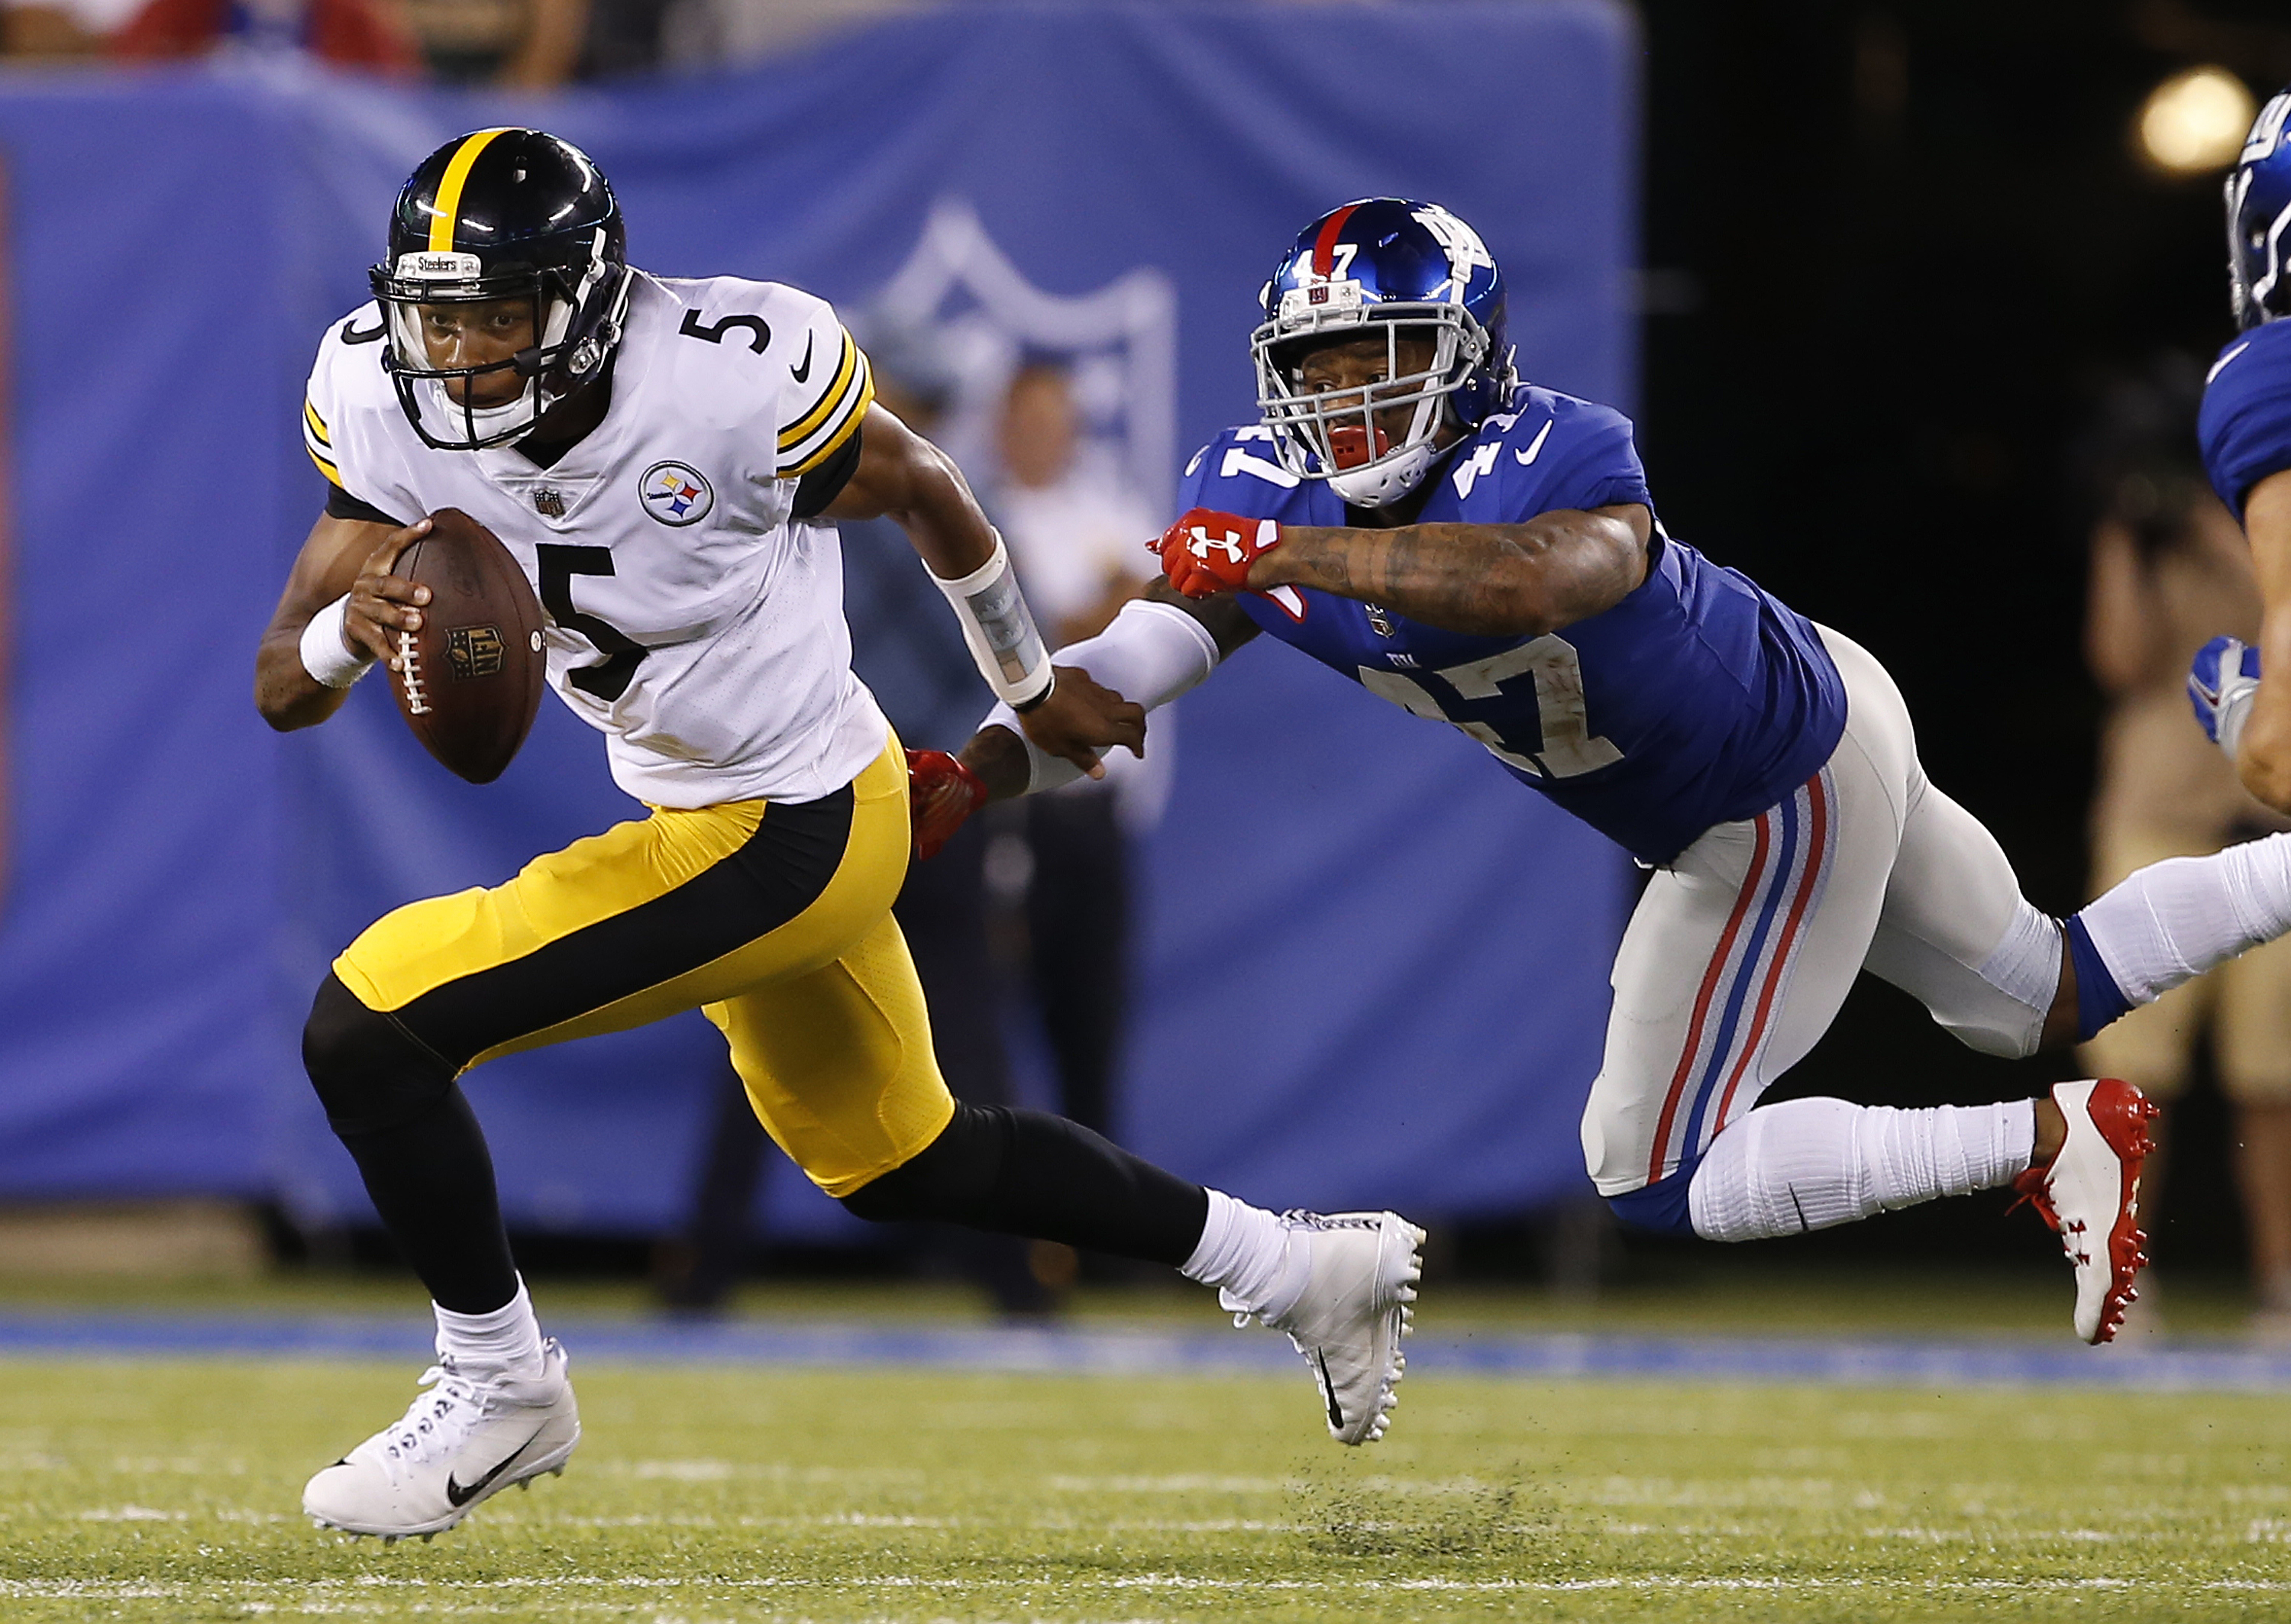 Atlanta Falcons vs Pittsburgh Steelers scores and updates